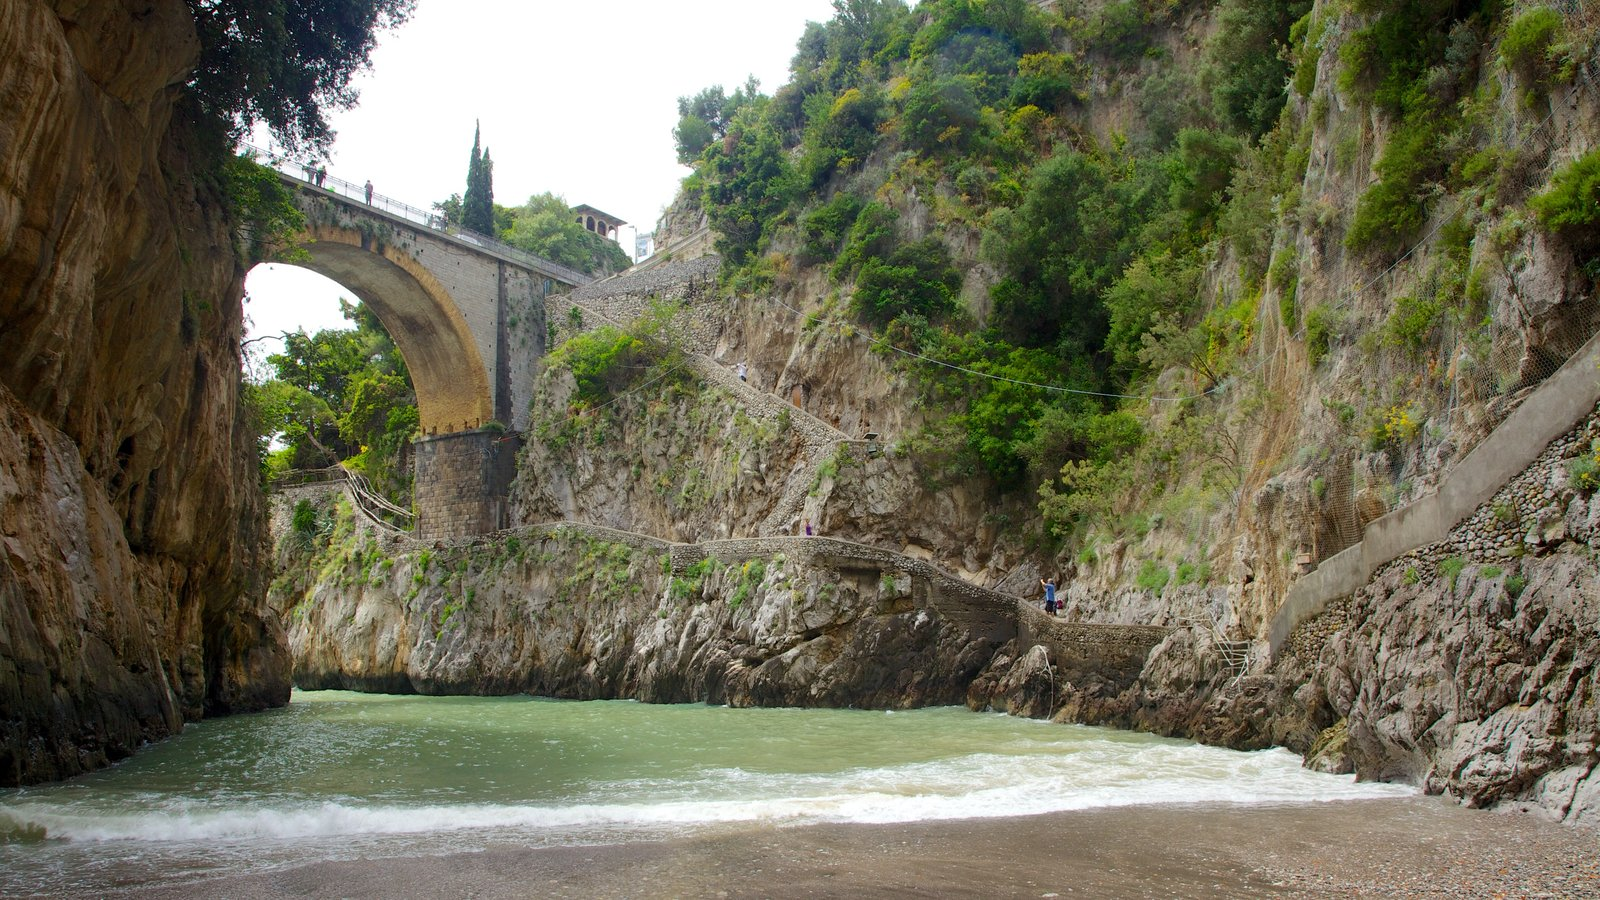 Fiordo di Furore showing a beach and a bridge